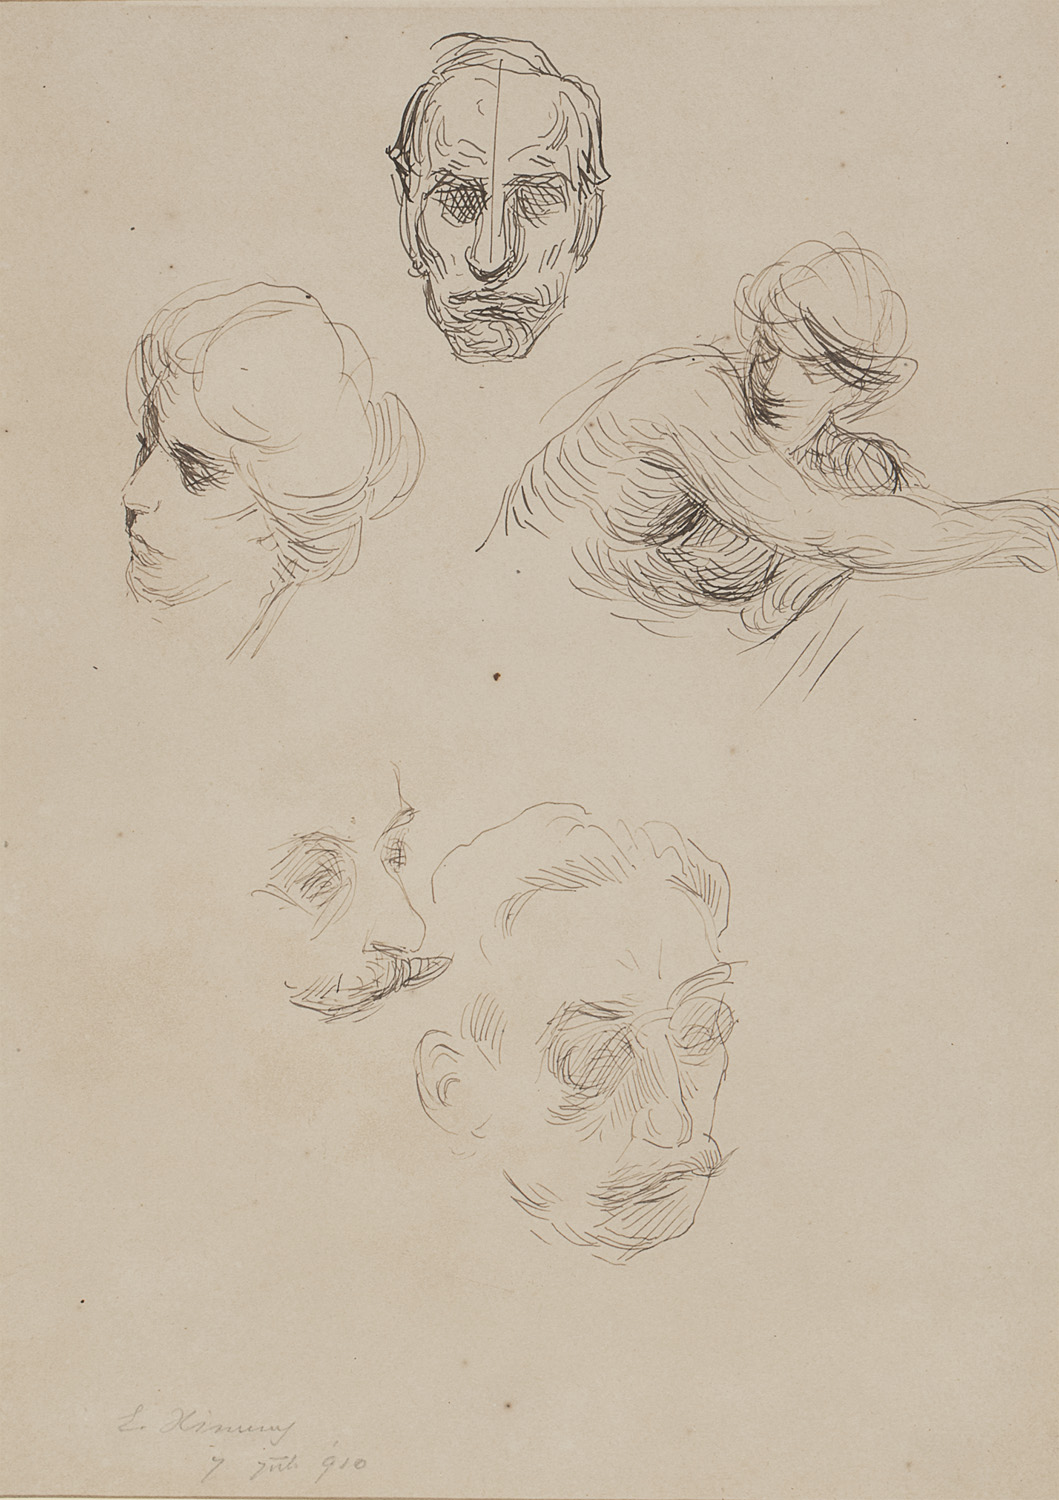 INK DRAWING ON PAPER BY ETTORE XIMENES 1910